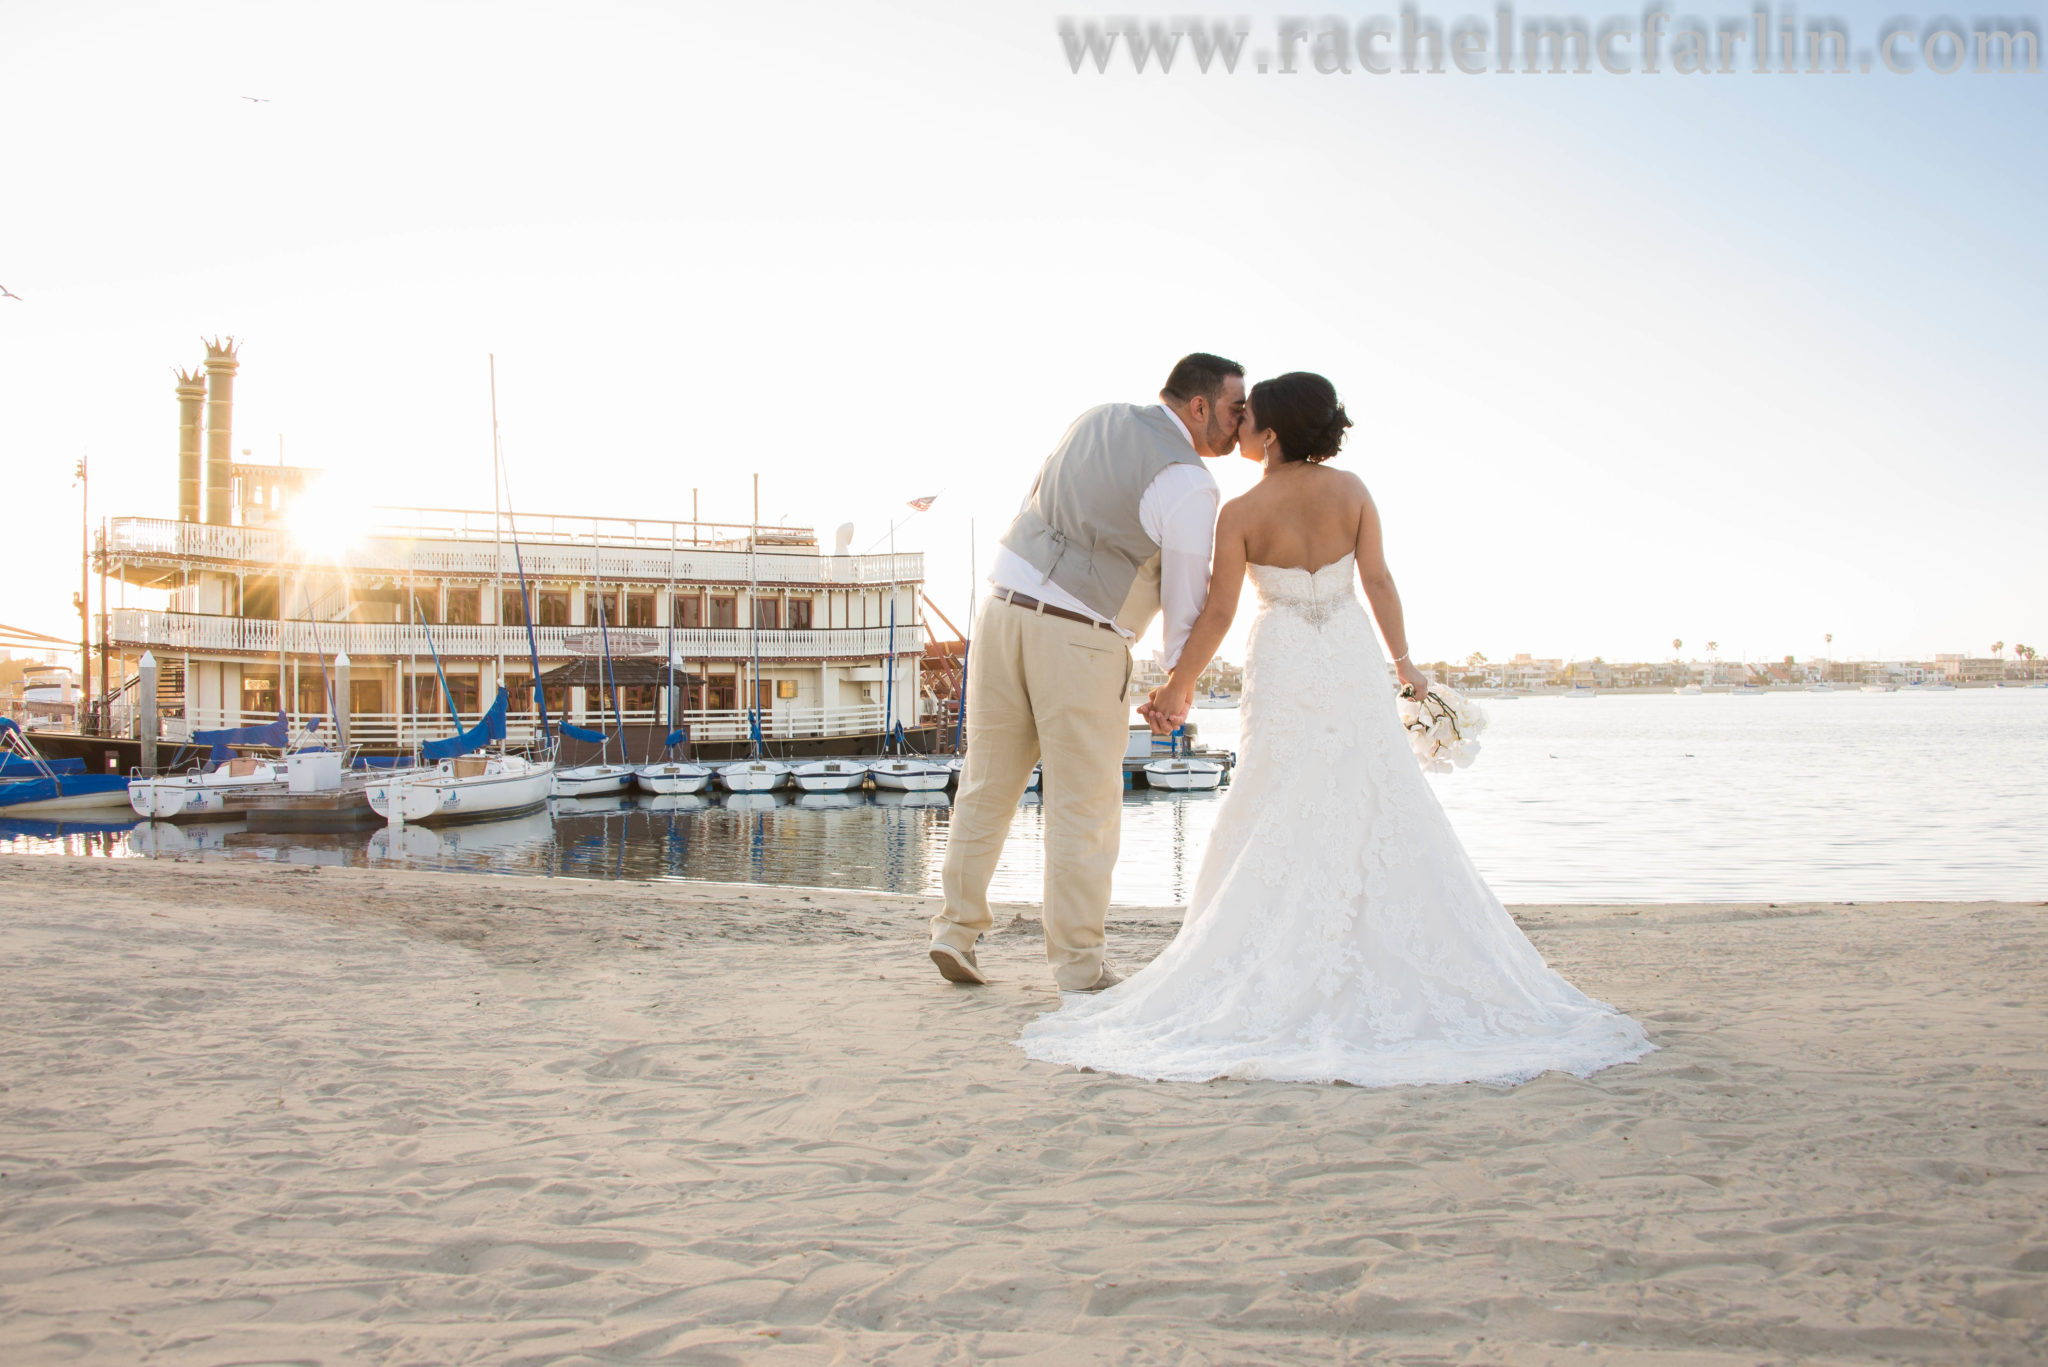 La Jolla Wedding Photographer, San Diego Destination Wedding Photographer